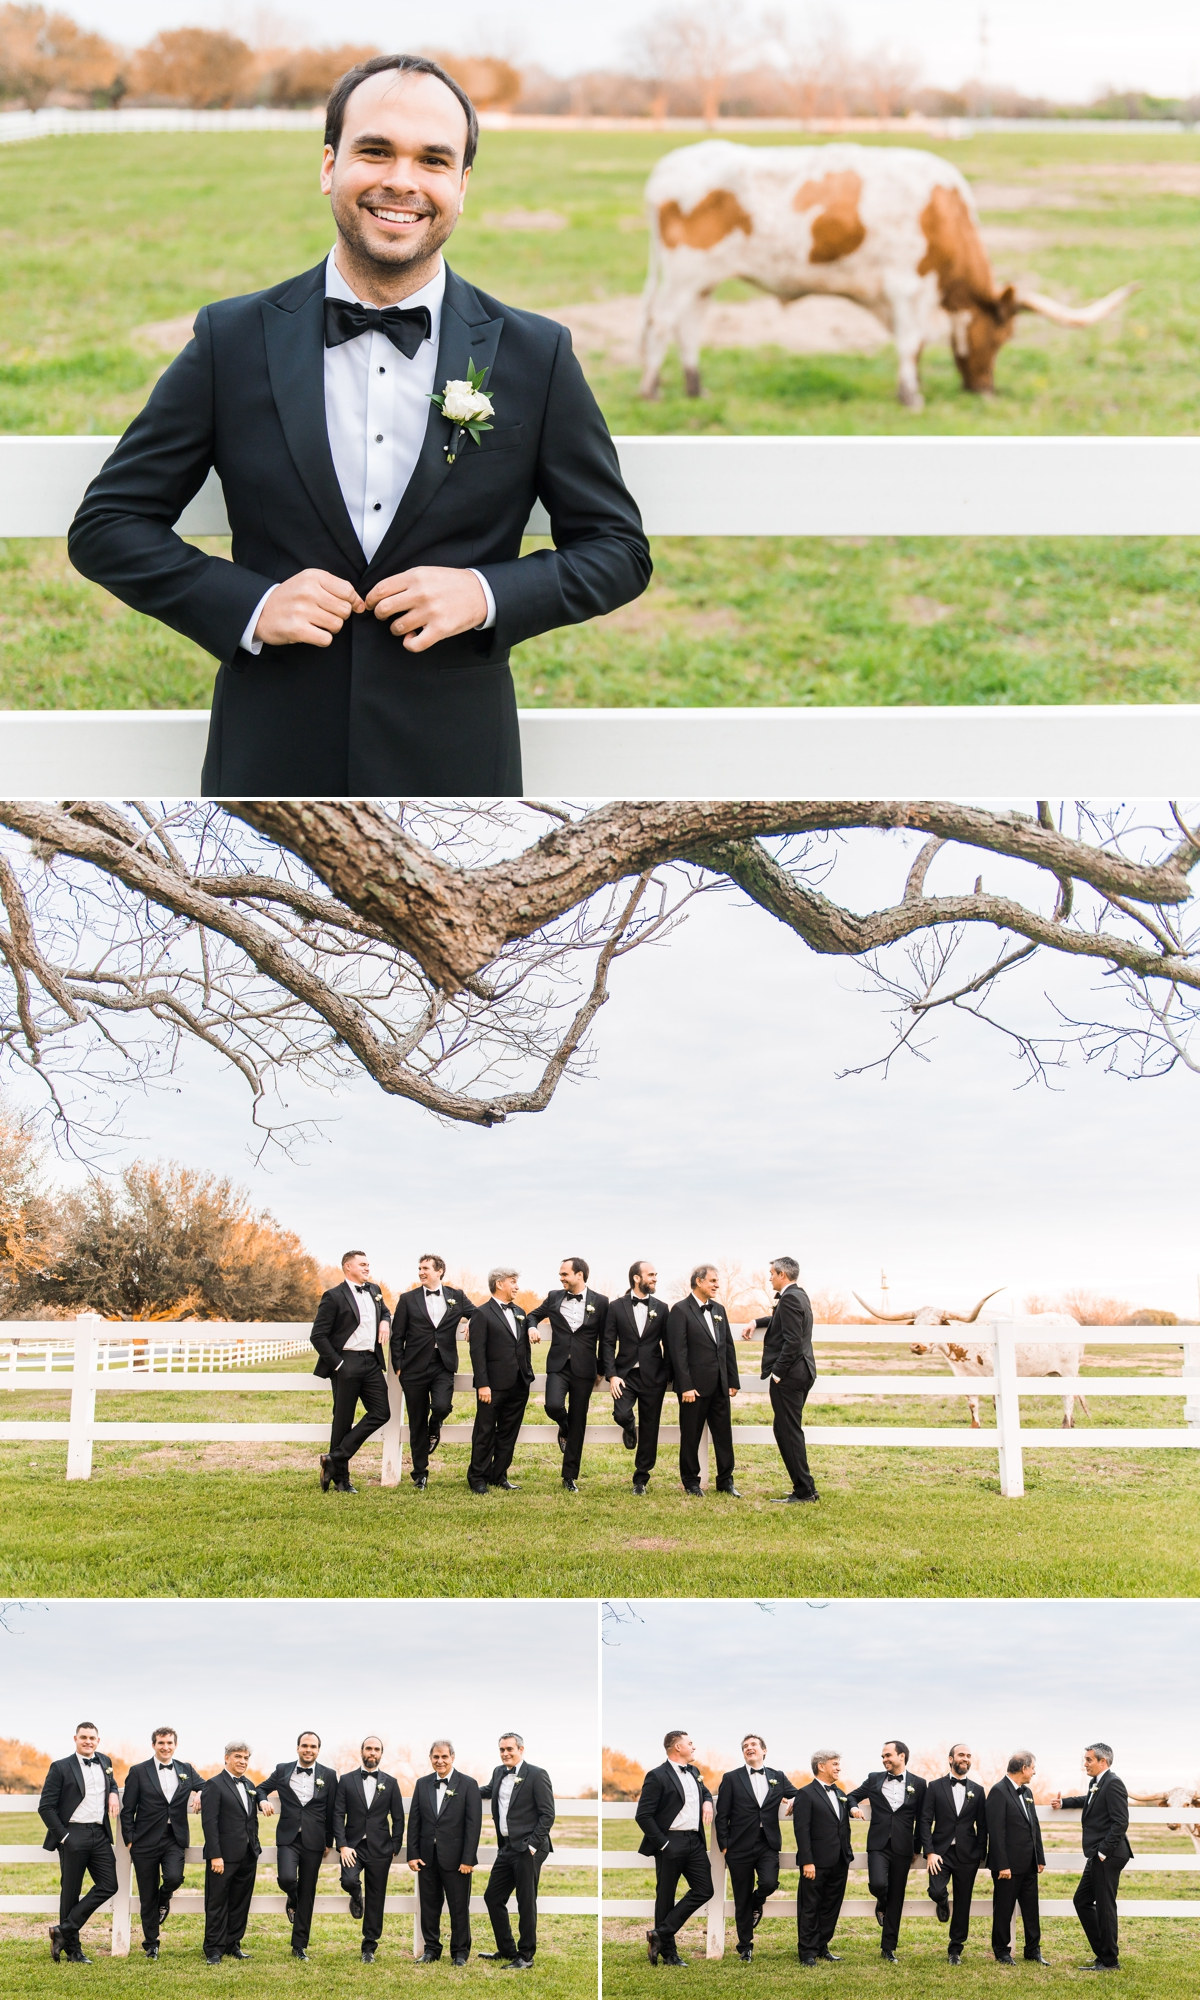 Groom and Groomsmen portraits with Texas Longhorns at Briscoe manor